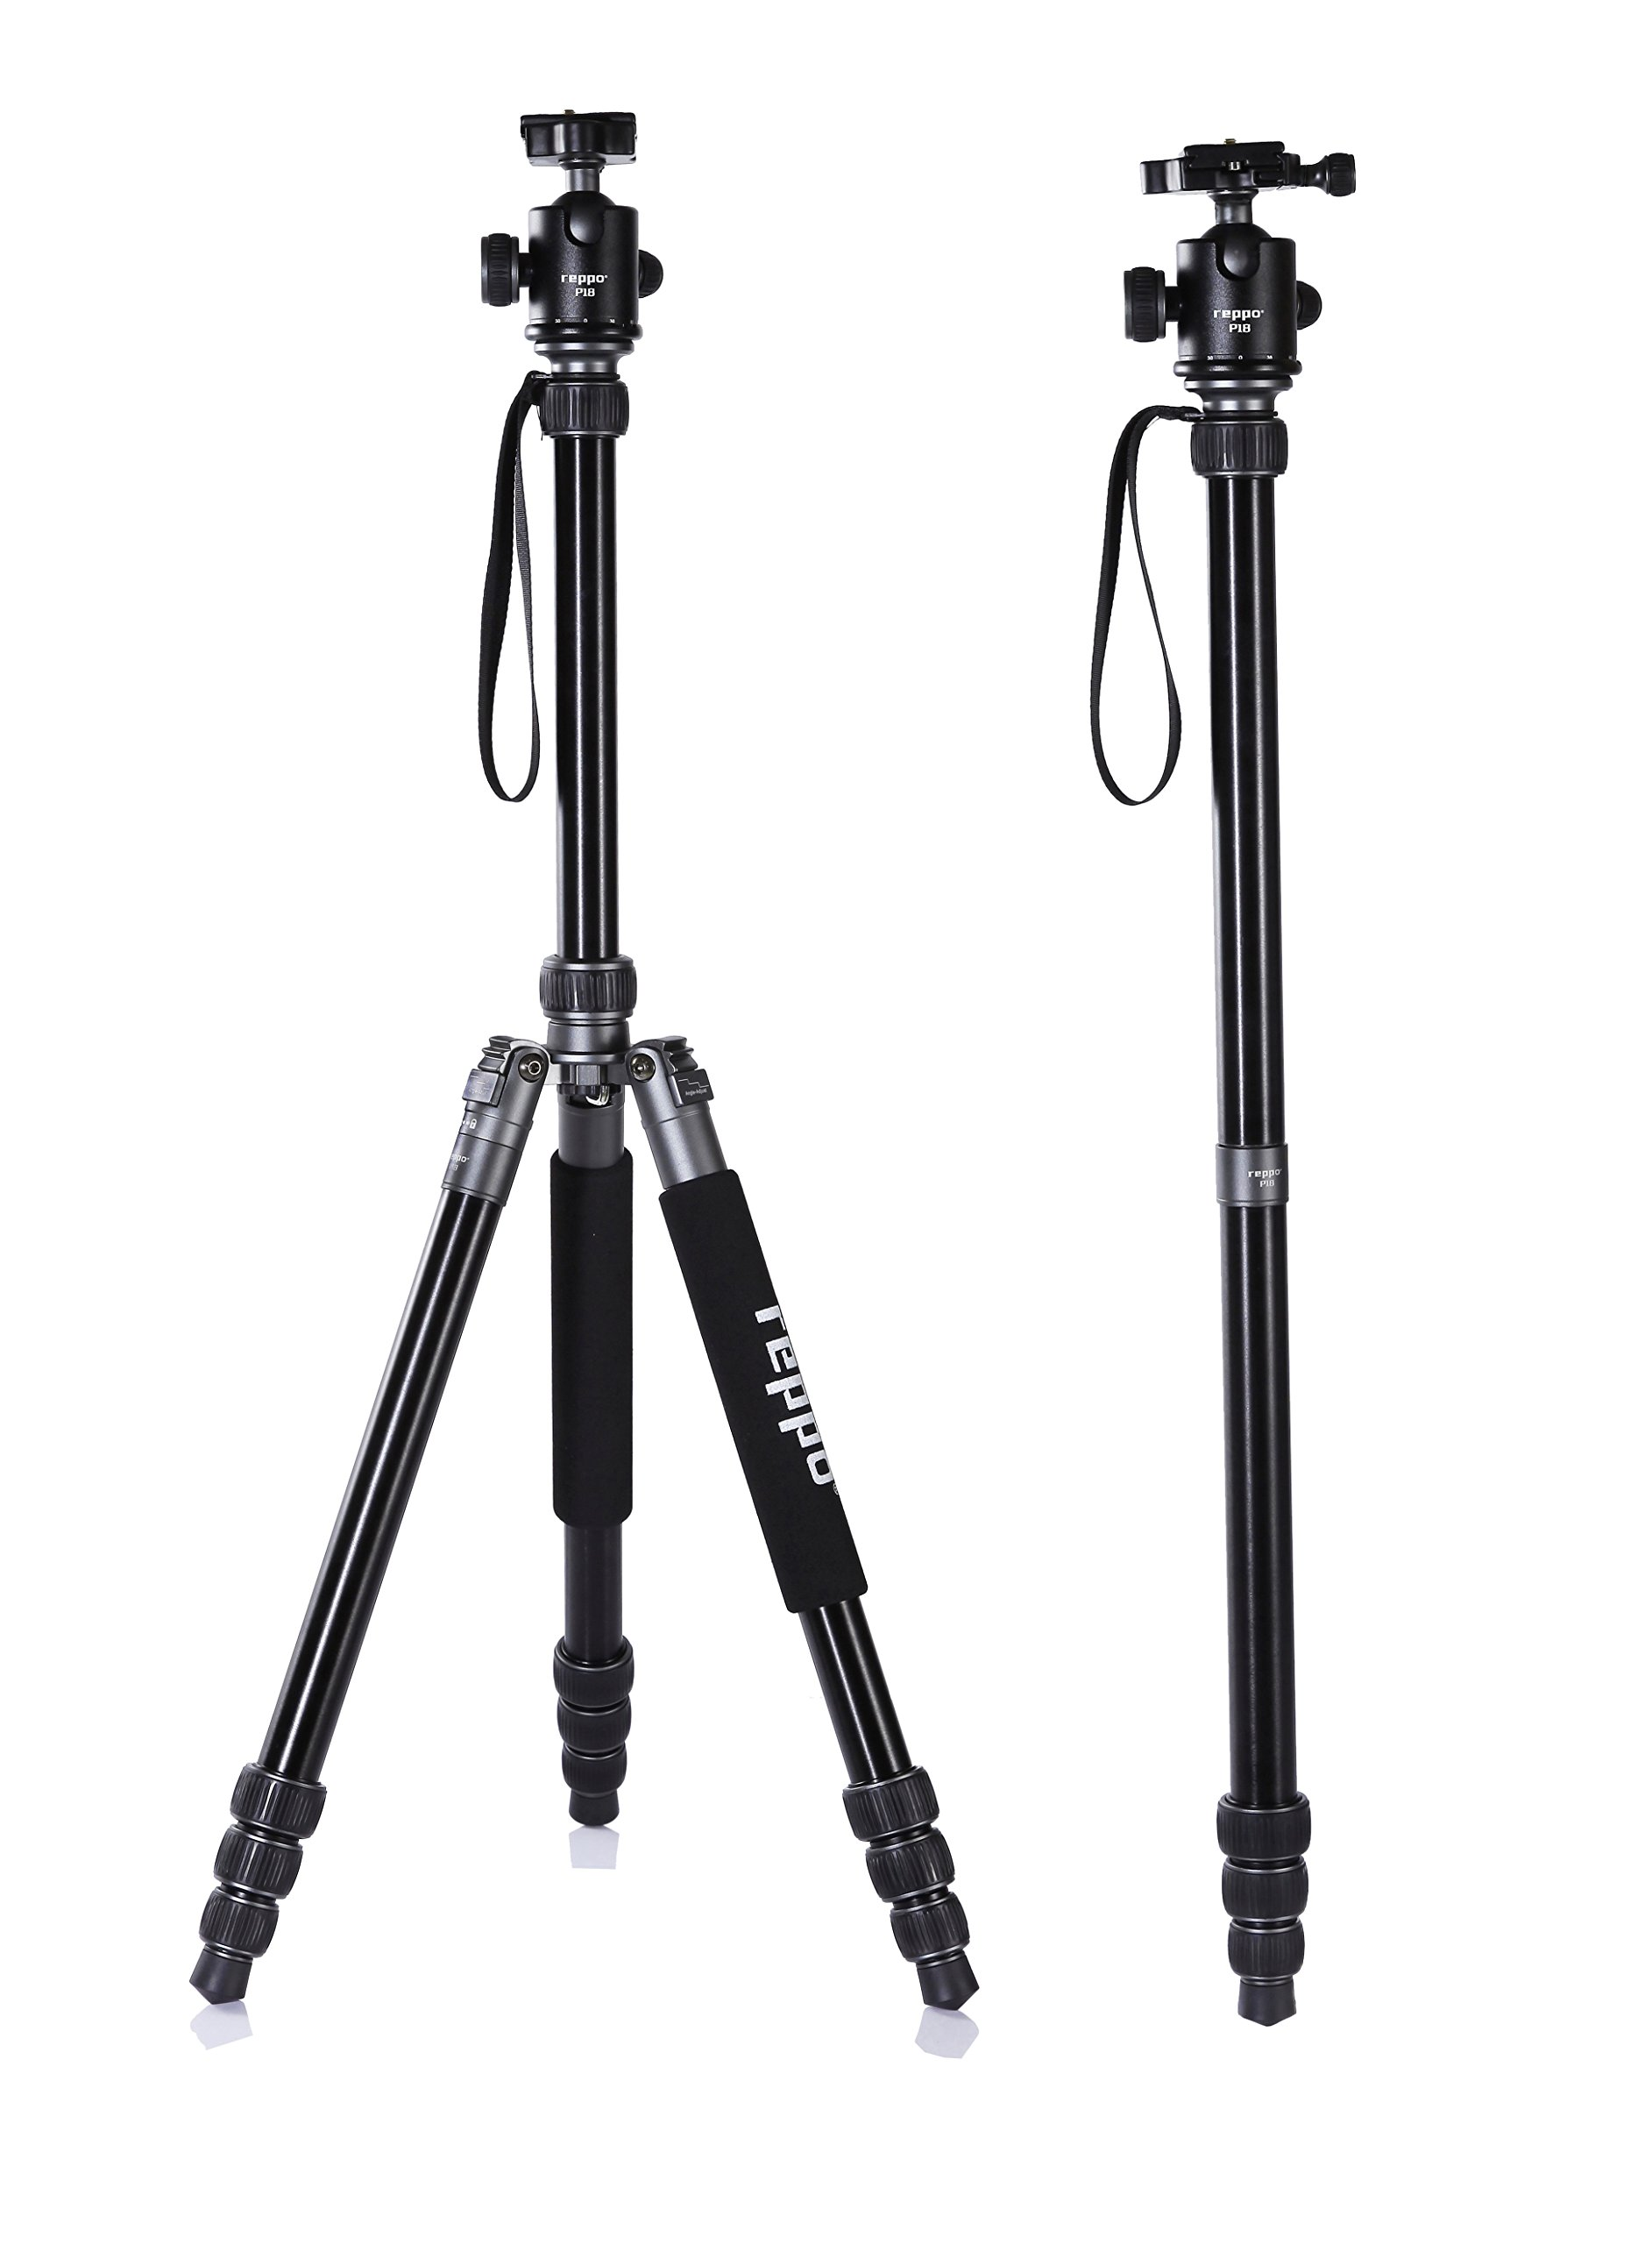 70 Inch travel camera tripod,REPPO P18 telescope Foldable camera tripods With Ball Head Quick Release Plate and Carry Case For Digital/Video/DSLR Cameras-Matte SILVER by riepor